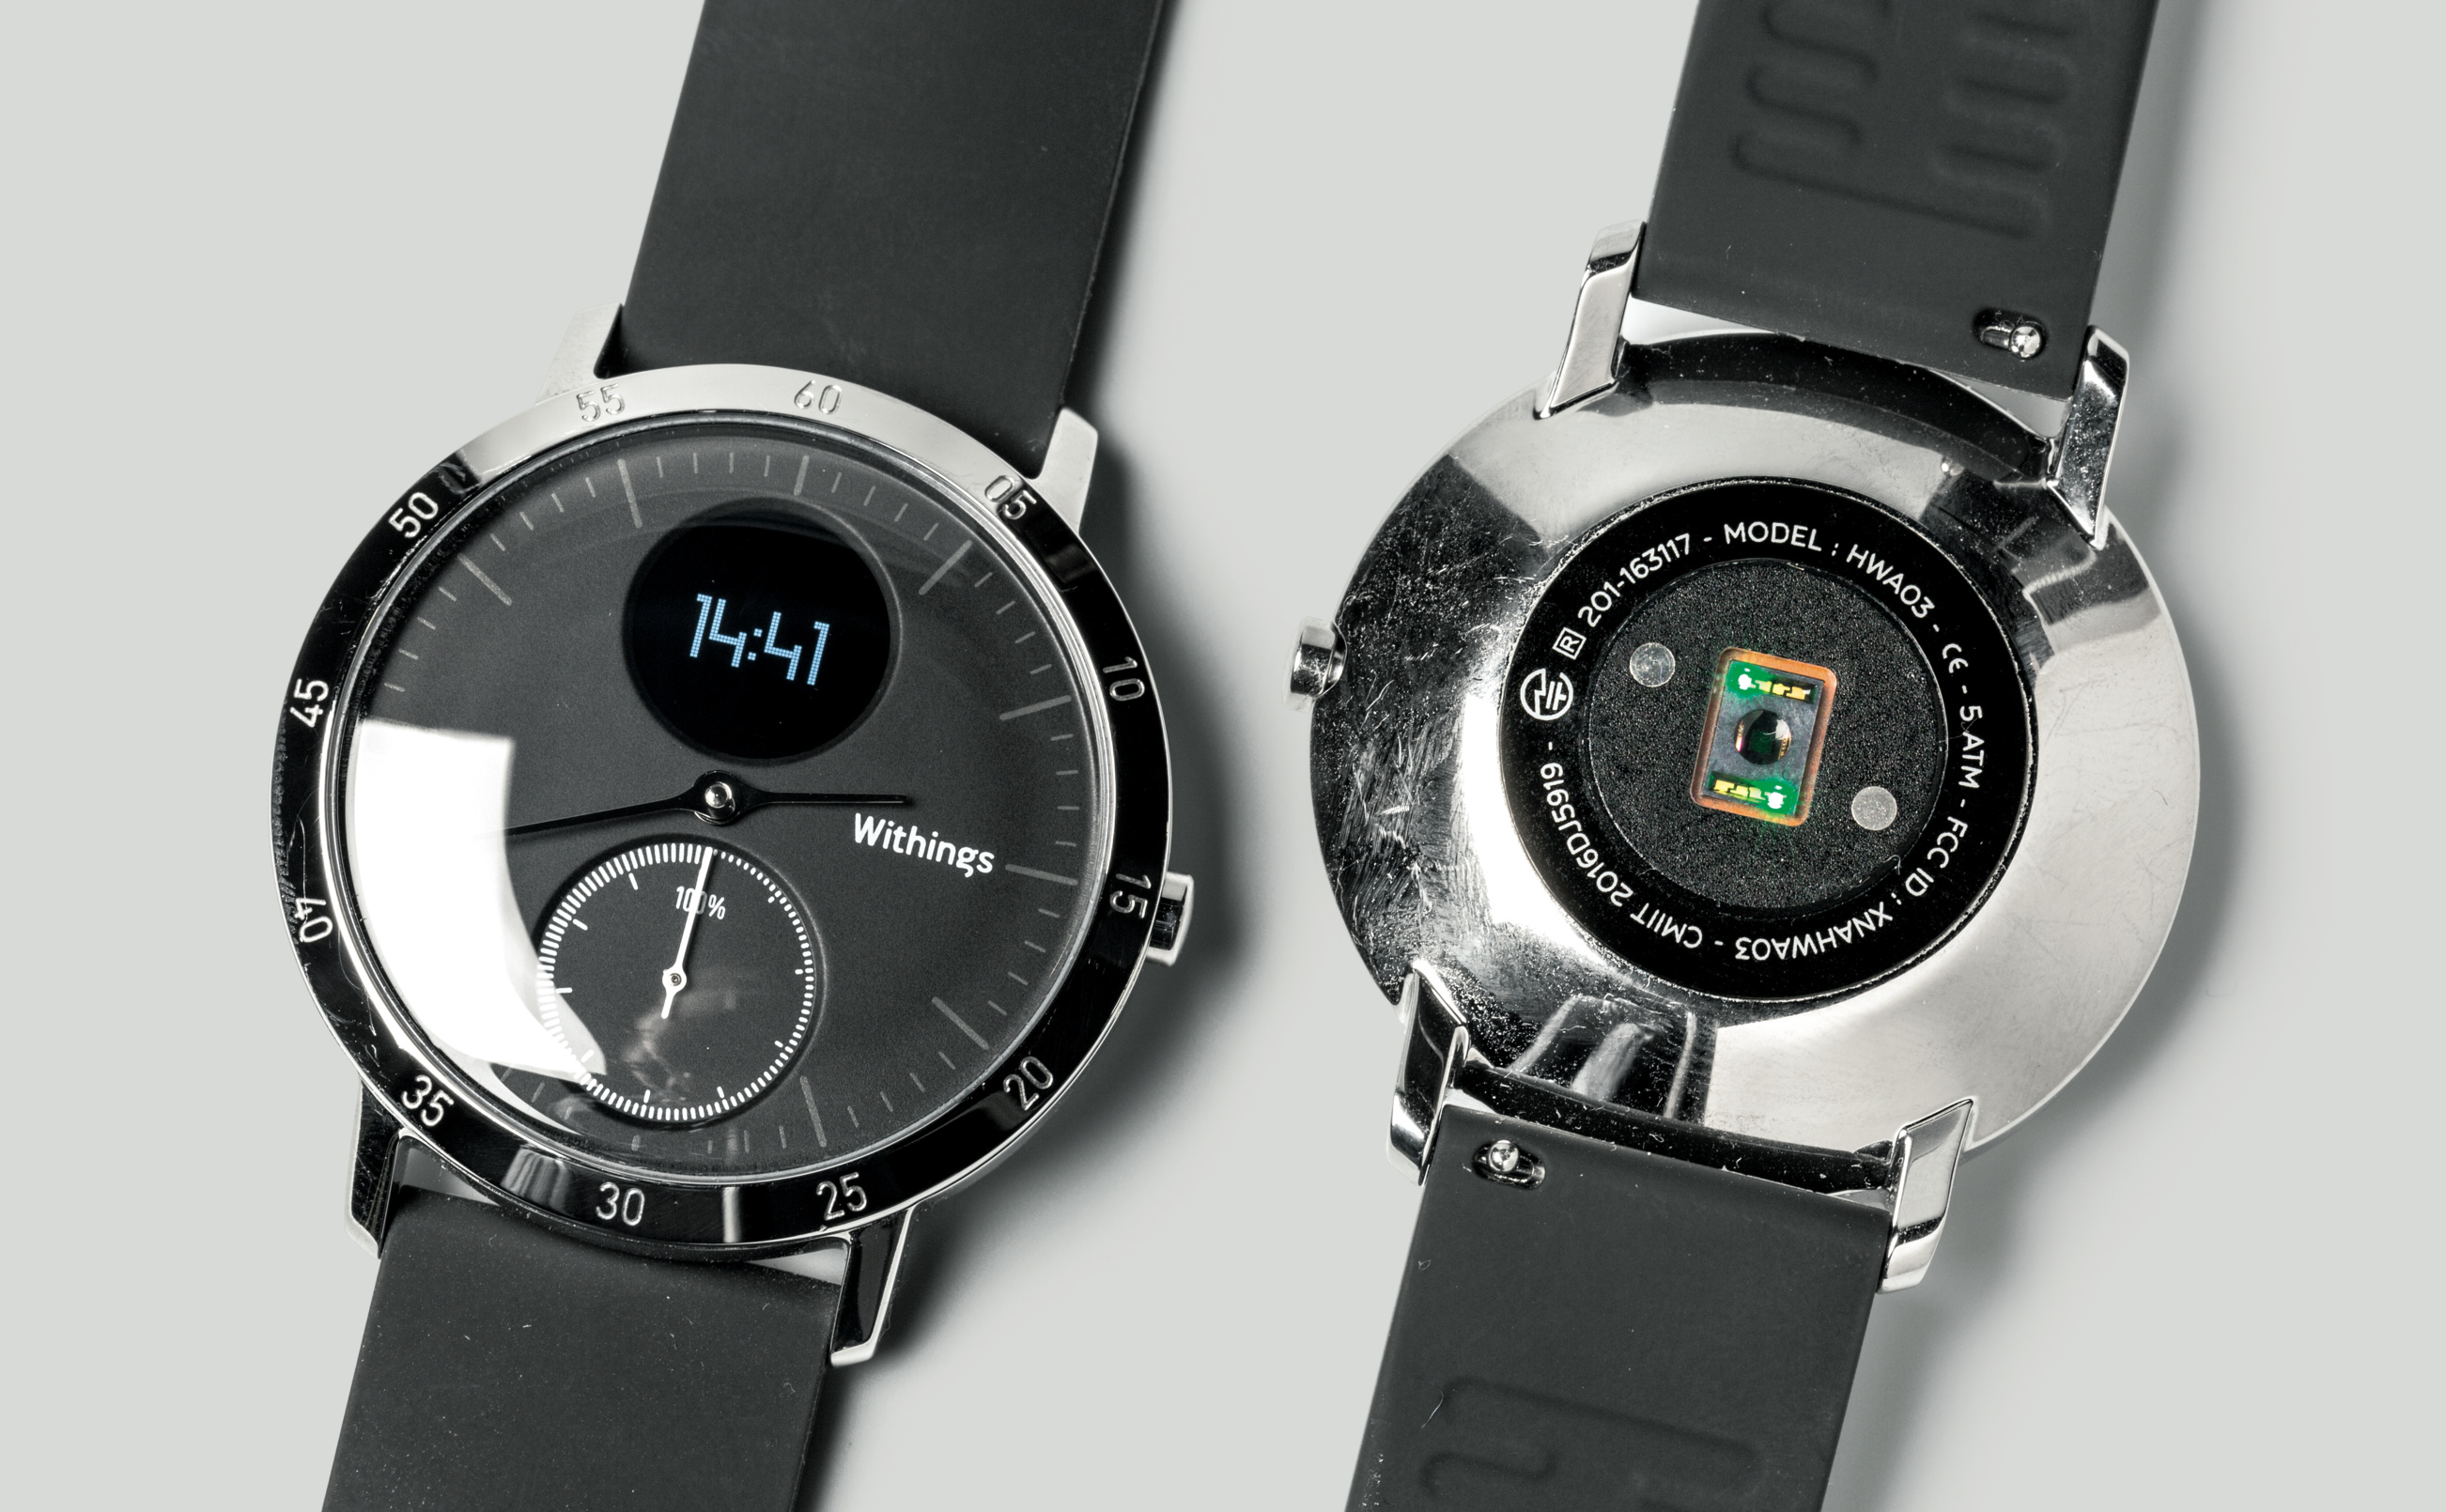 the smart watches off watch hybrid concept gear shows pocket samsung